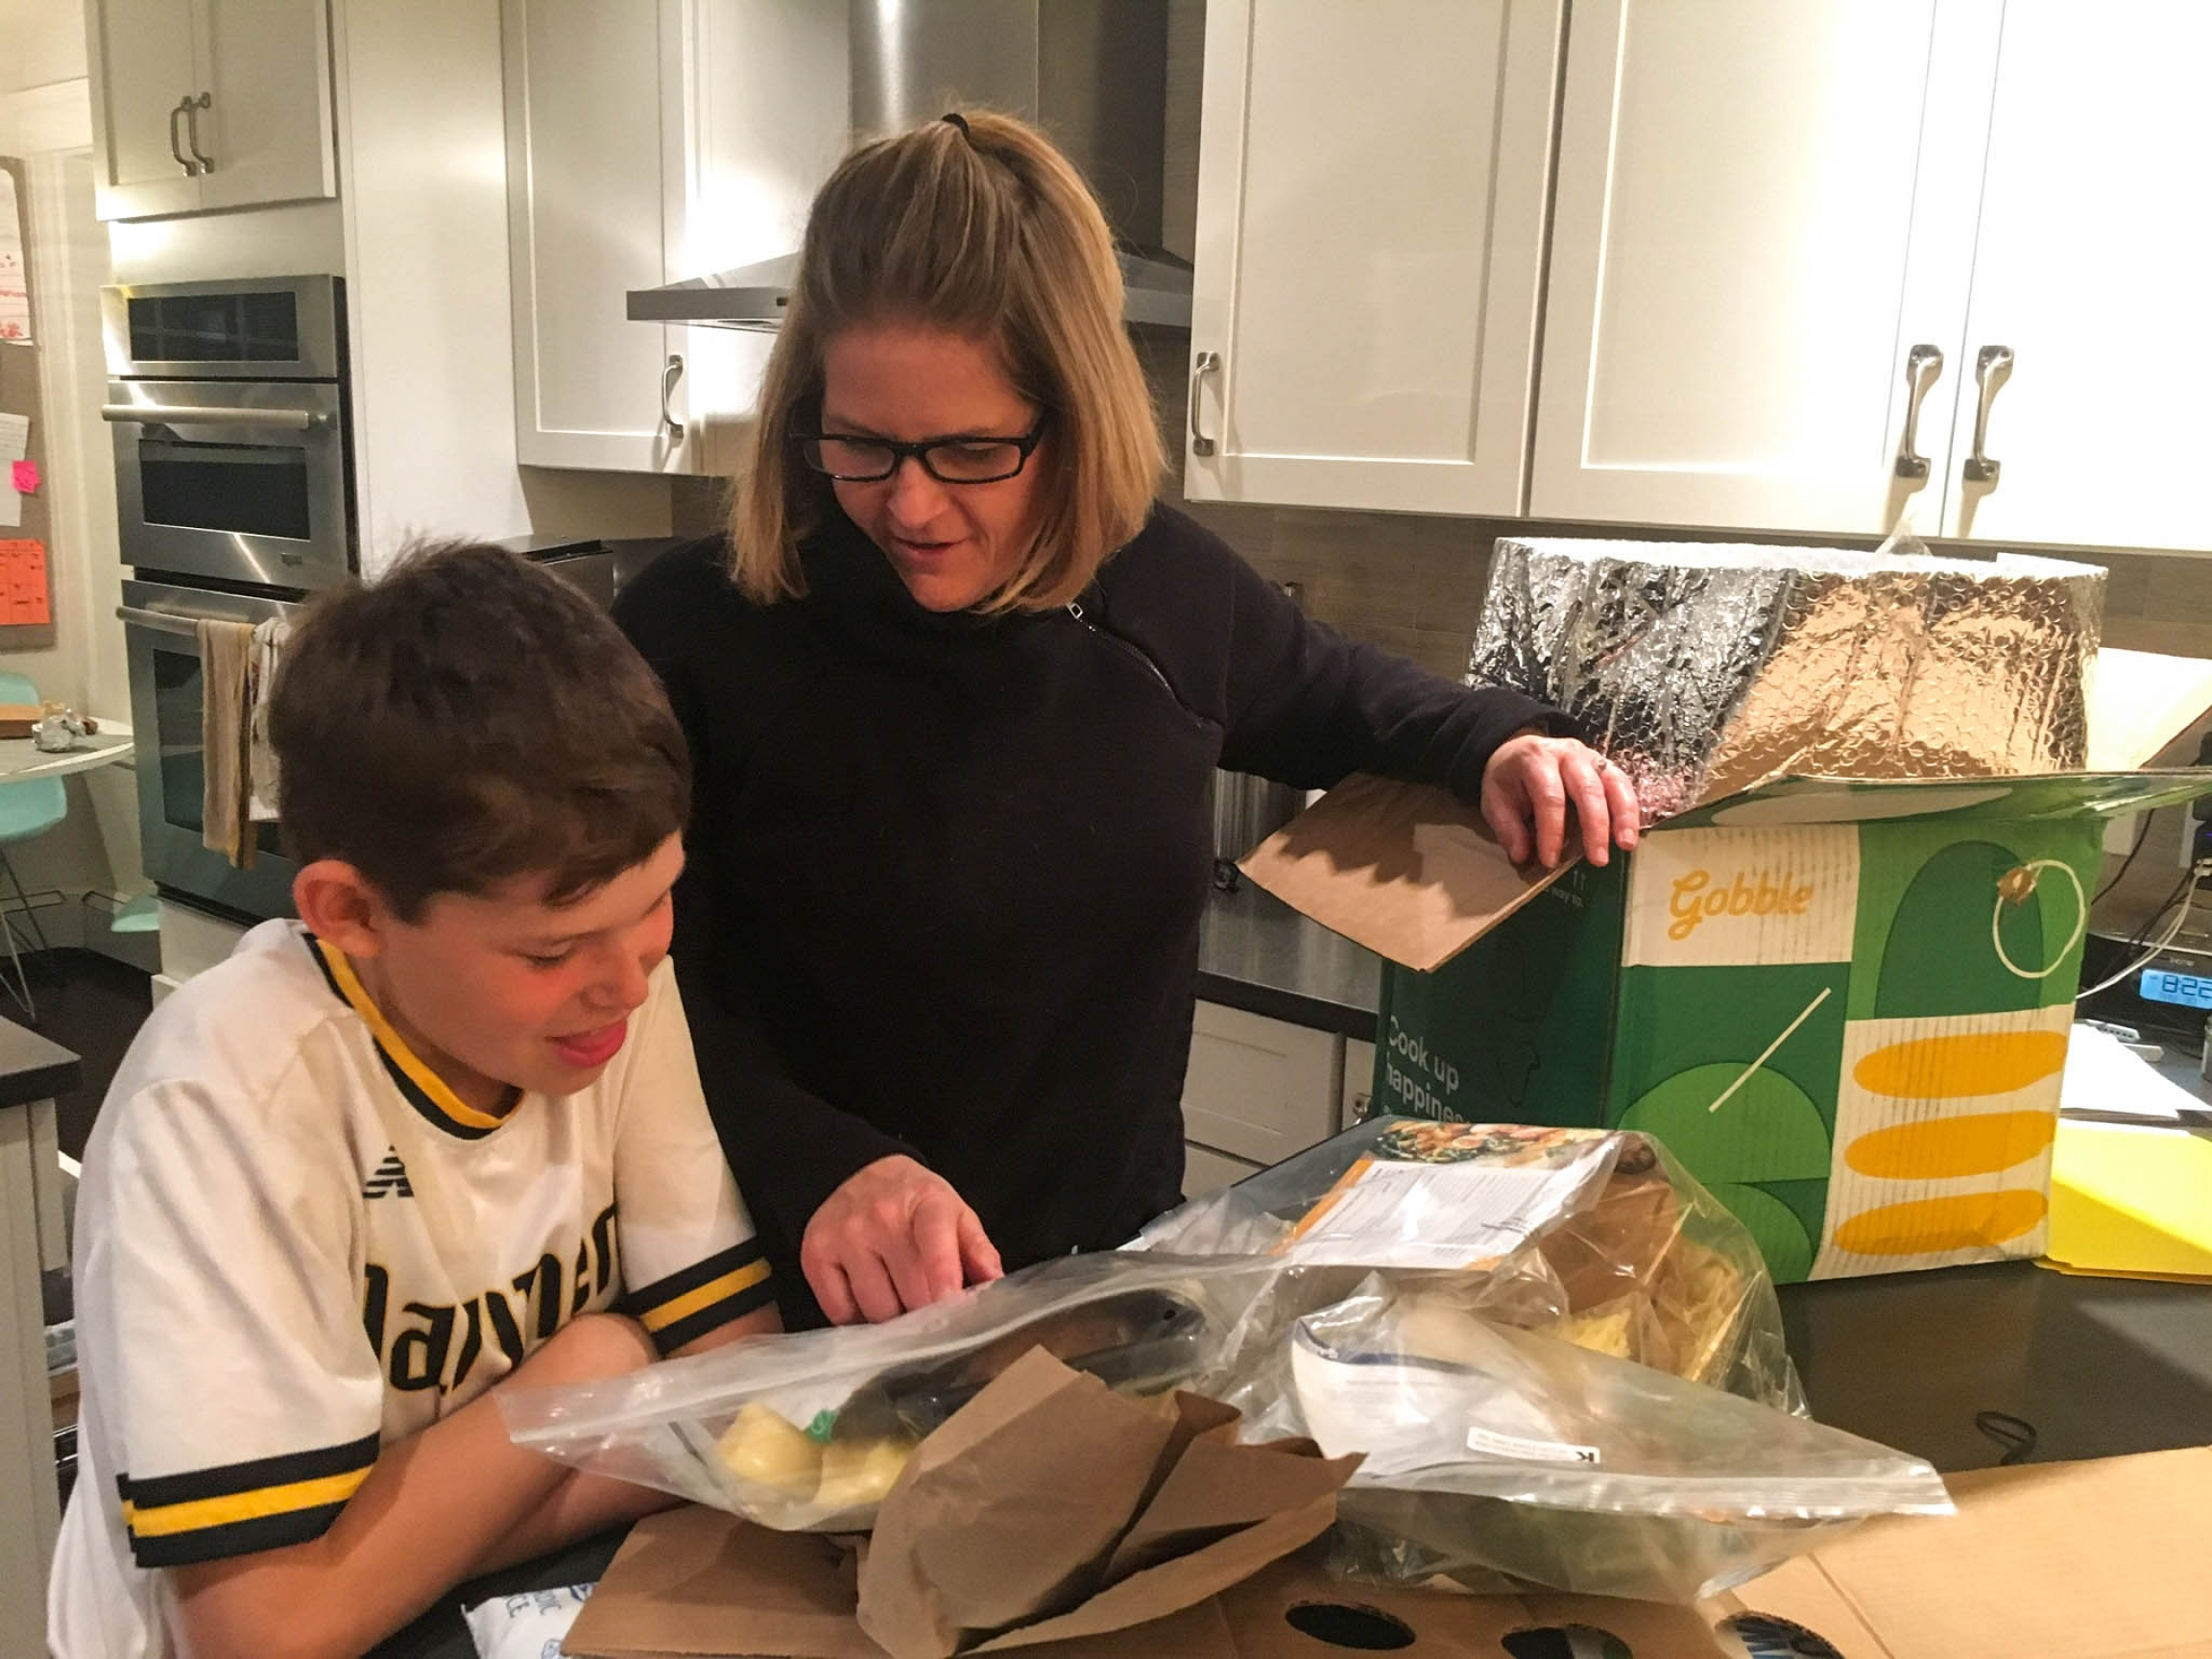 Wednesdays are a big deal when our meal kit arrives. For my son, Charley, and wife, Amy, it's like unwrapping a present.